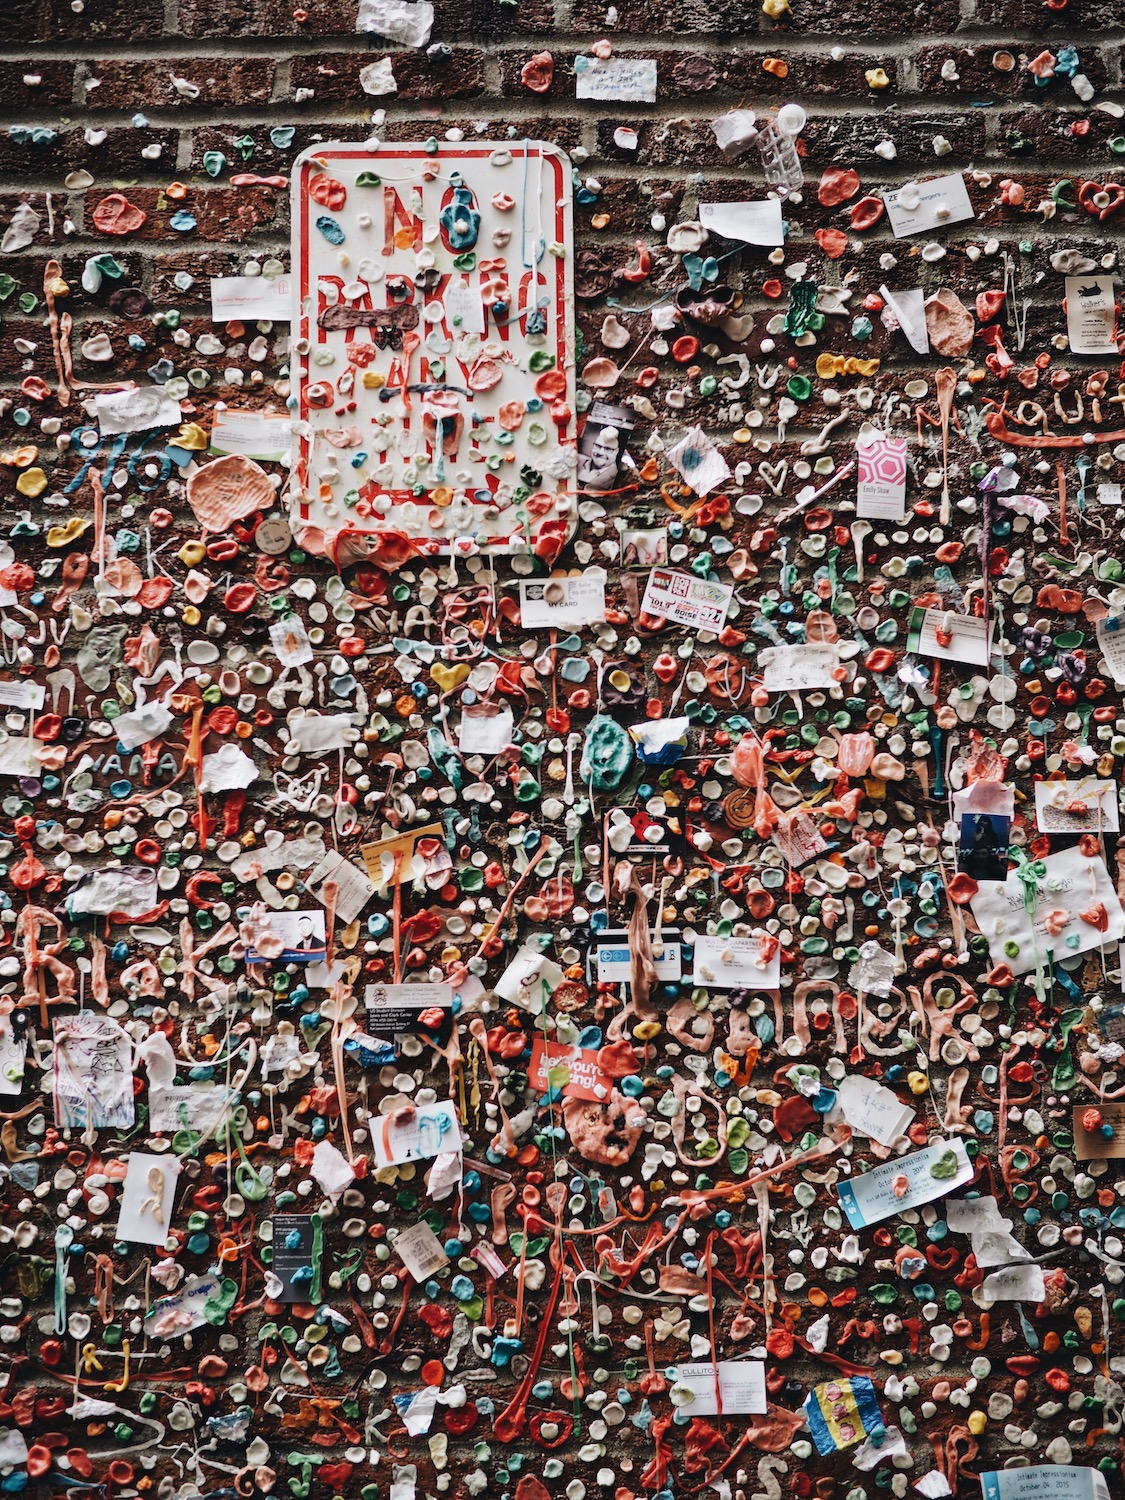 Gum Wall before they power-washed it.